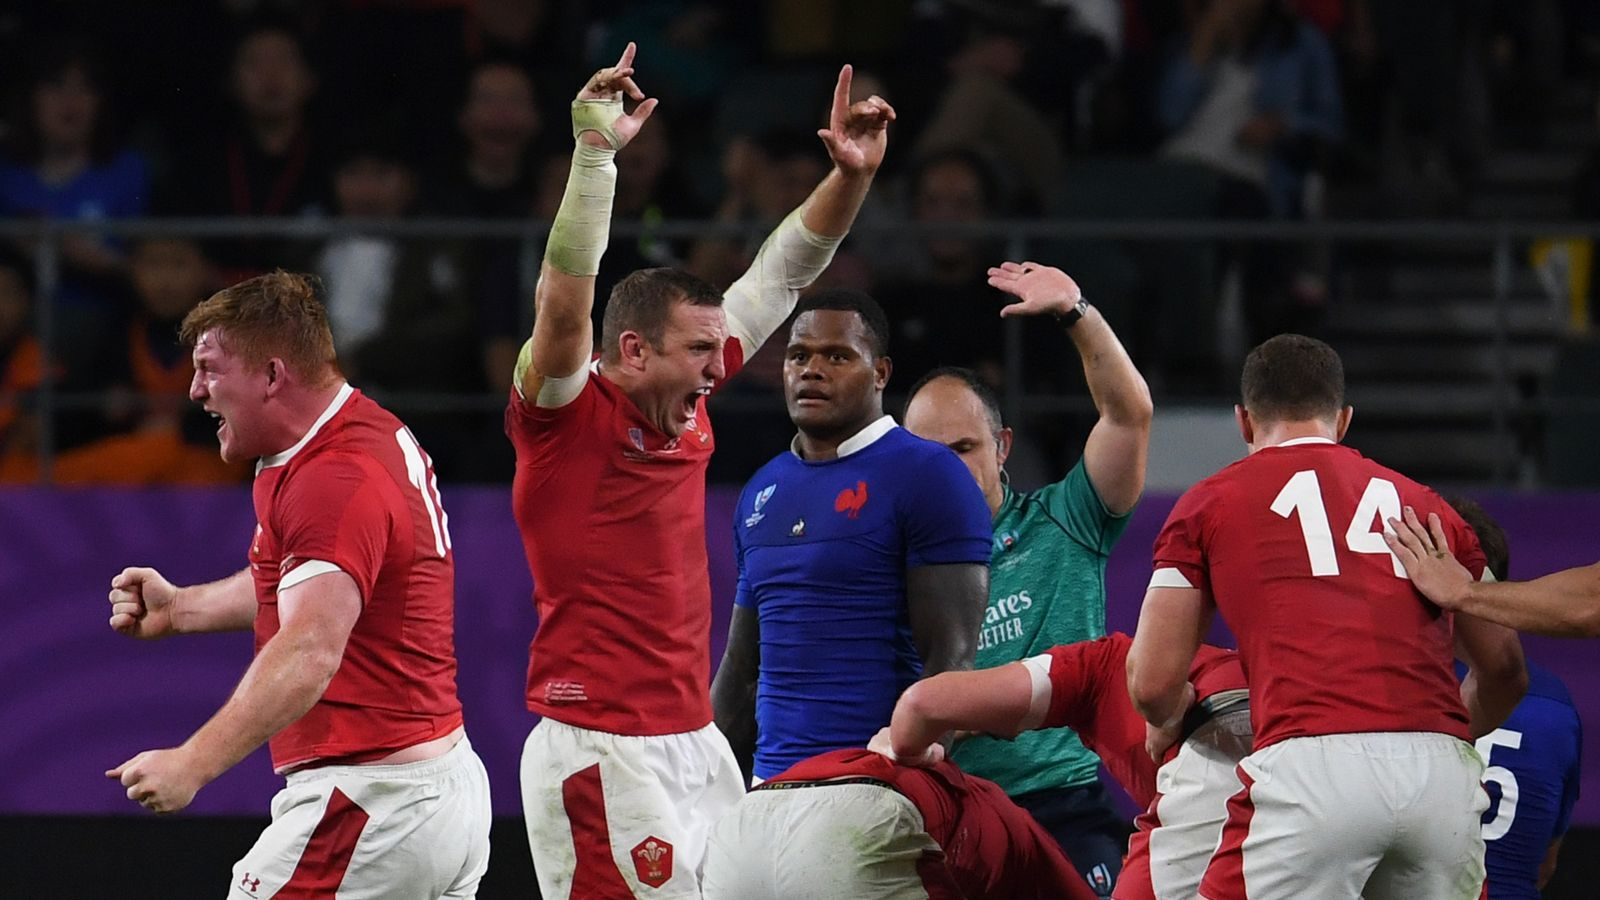 Wales 20-19 France: Ross Moriarty try seals win over 14-man France